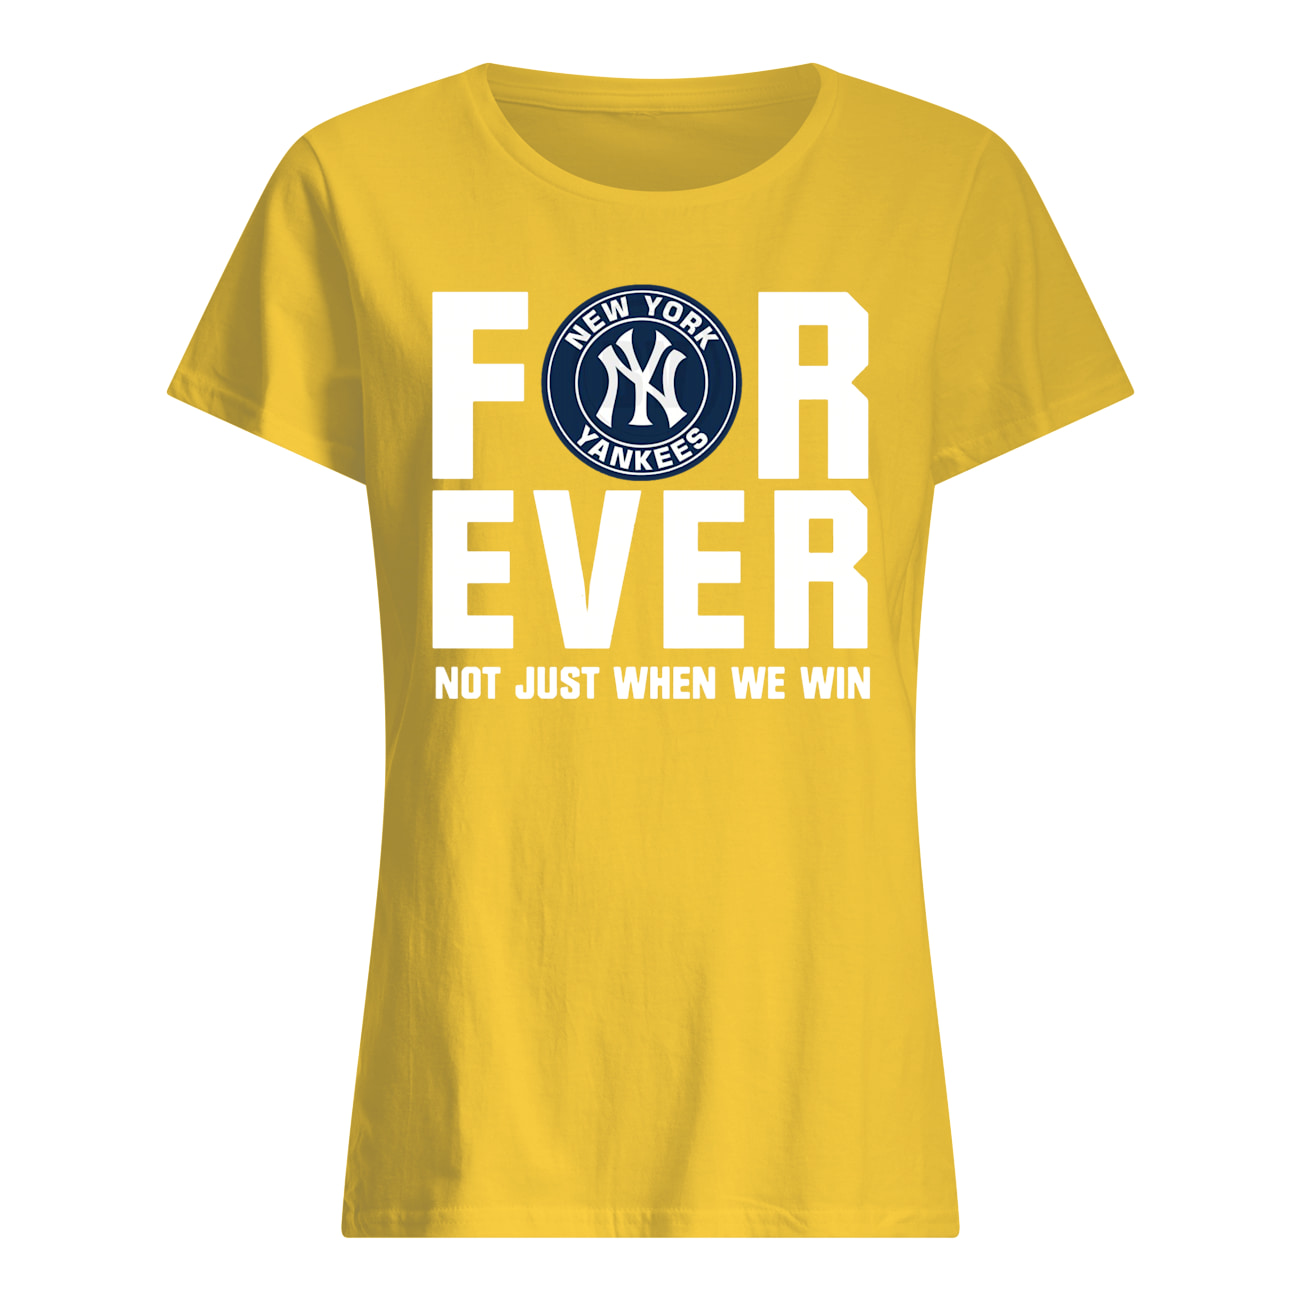 New york yankees forever not just when we win womens shirt